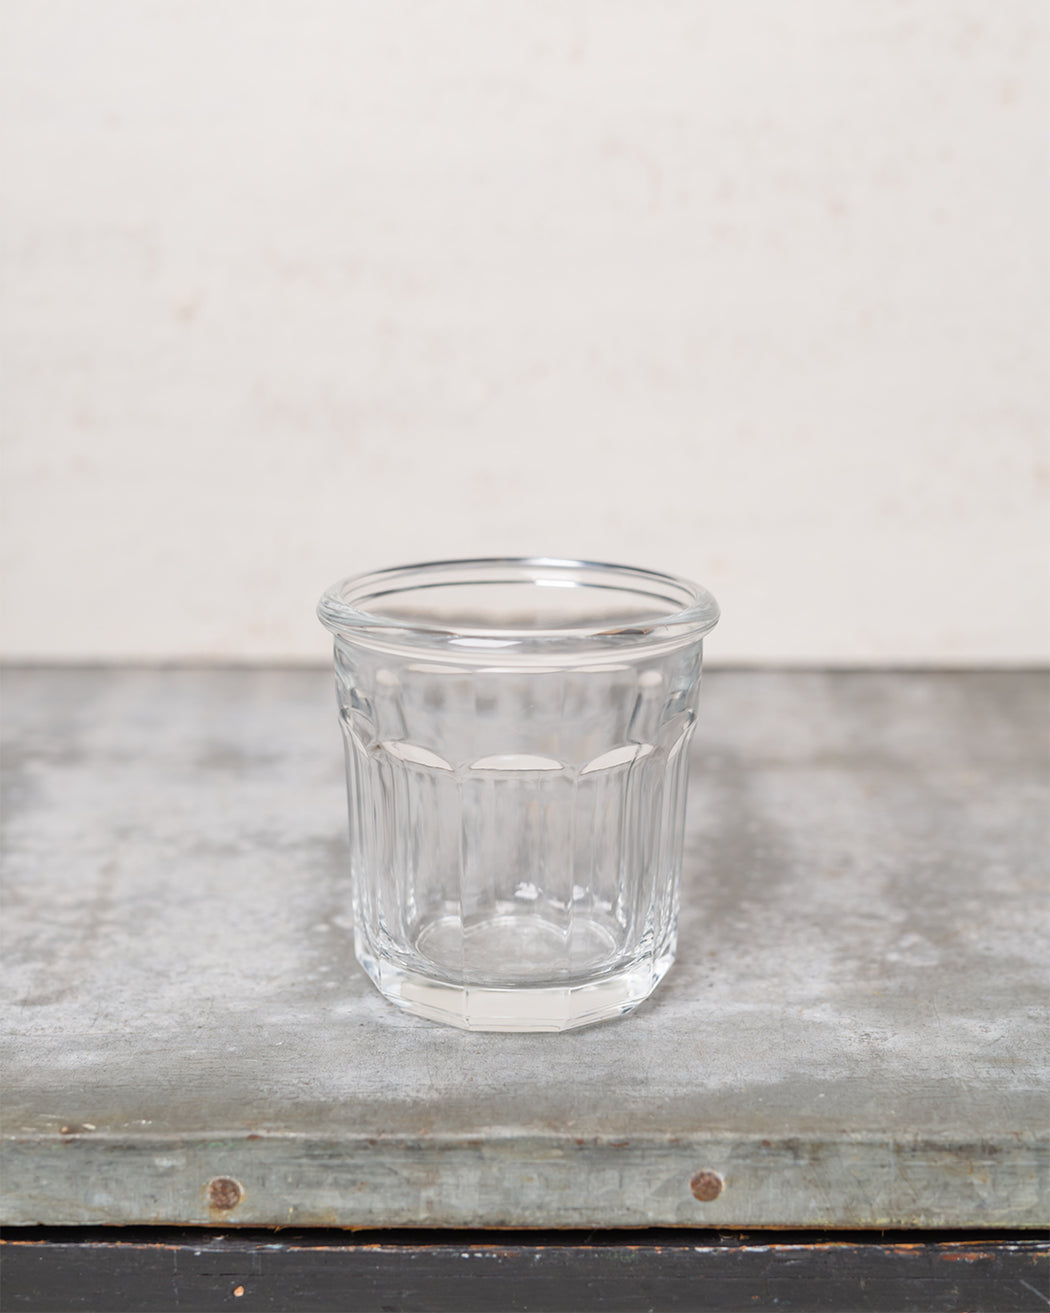 Mini Working Glass (6.25 oz.) - Fishs Eddy